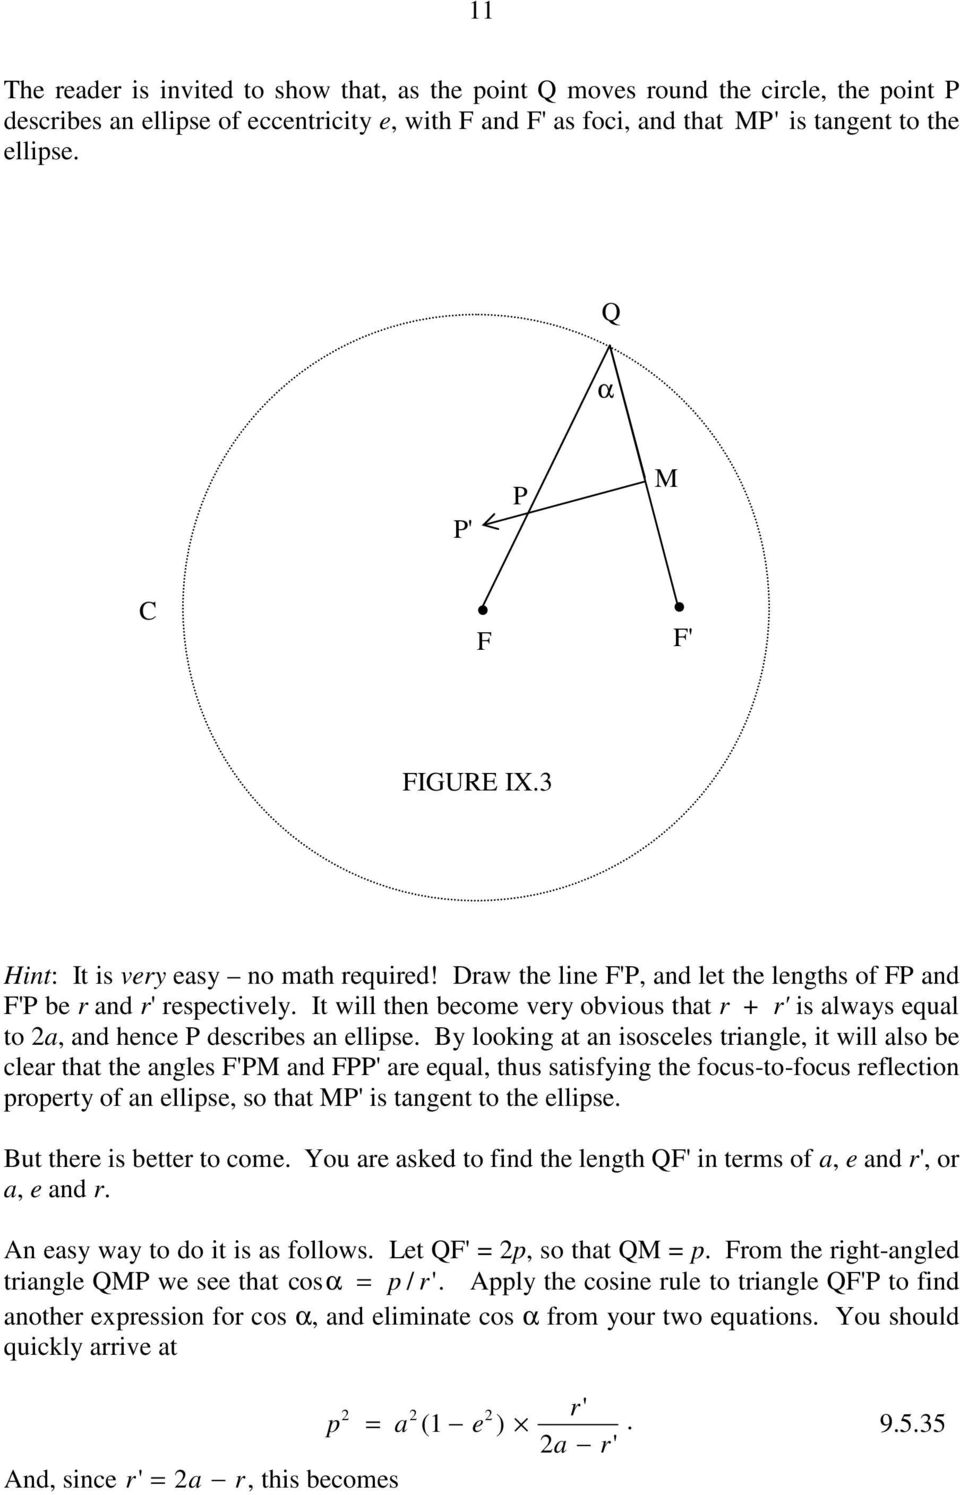 It will then become vey obvious that + ' is always equal to a, and hence P descibes an ellipse.